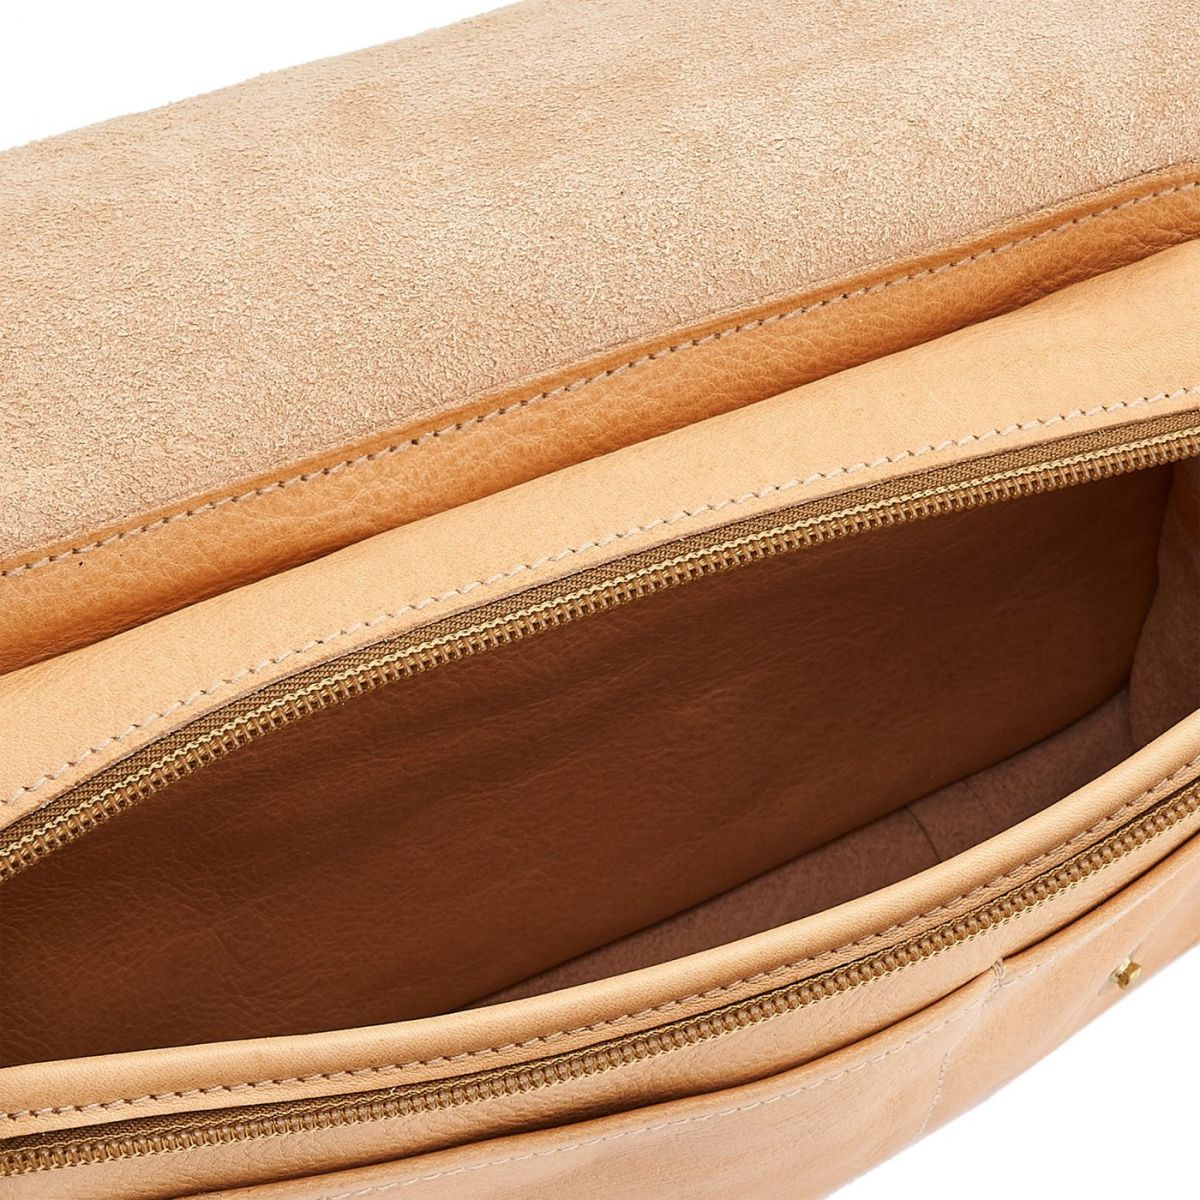 Men's Belt Bag in Cowhide Double Leather BBB011 color Natural | Details